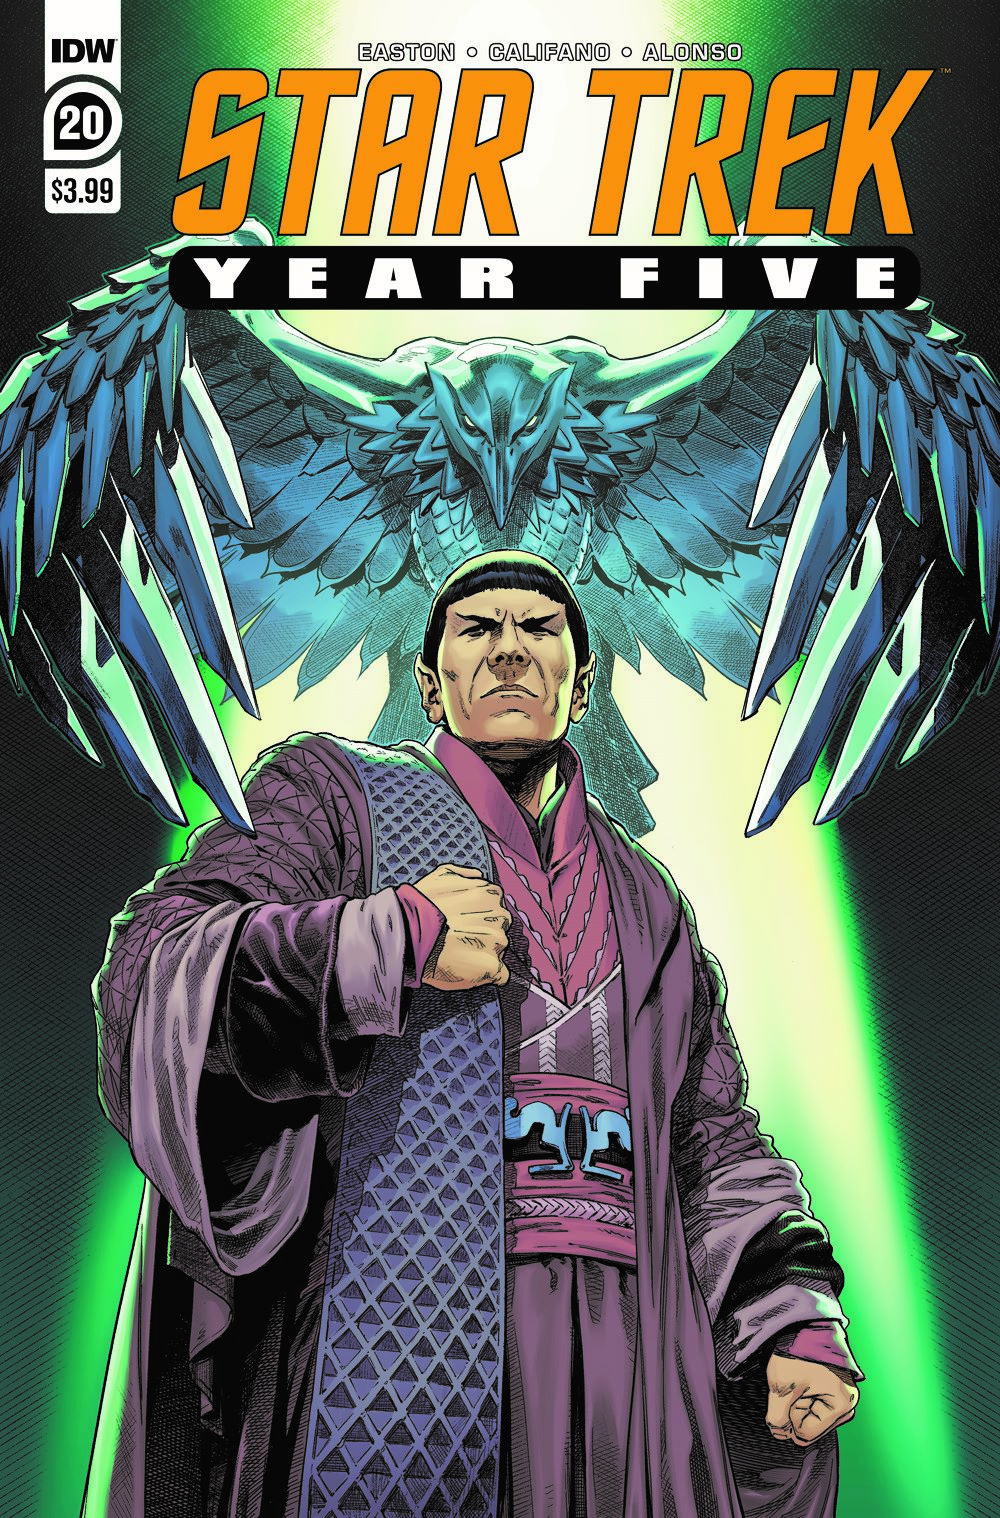 ST_YearFive20-cover ComicList: IDW Publishing New Releases for 05/19/2021